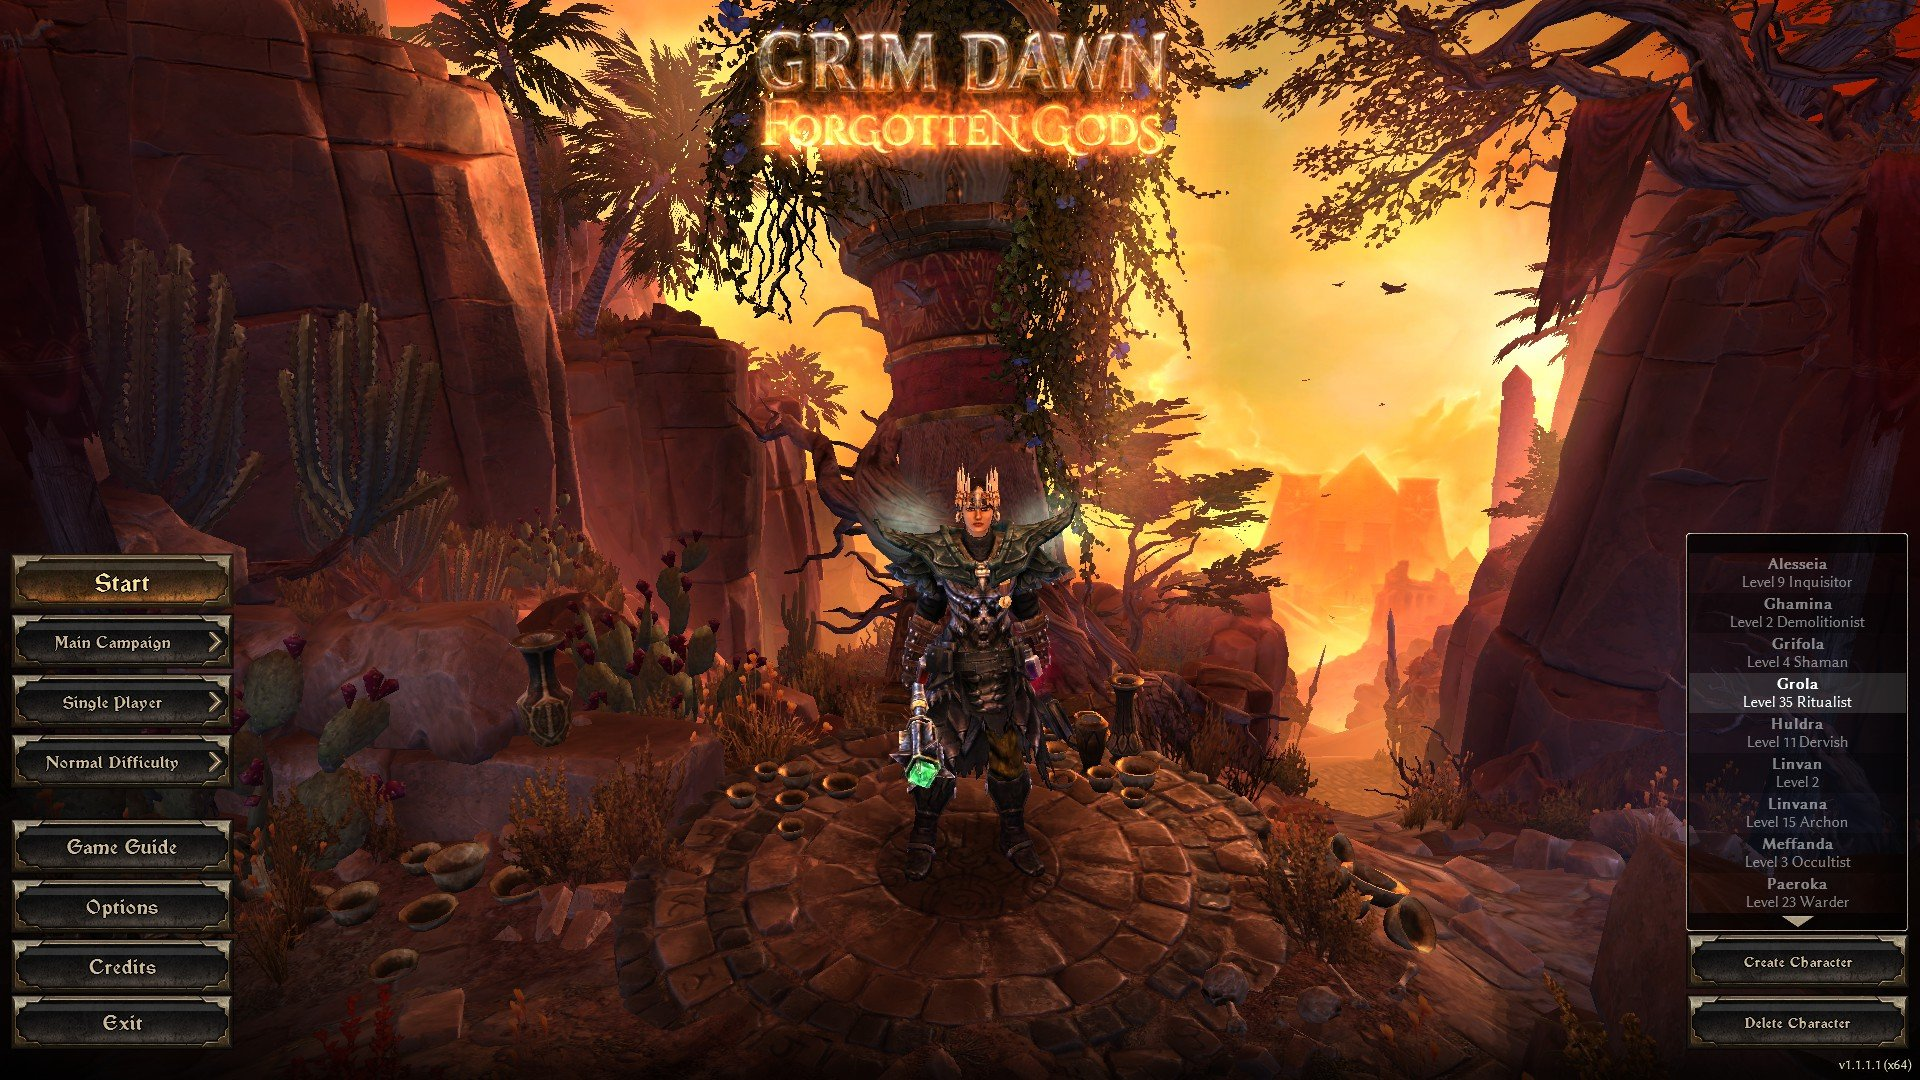 Too many choices in Grim Dawn – Nerdy Bookahs